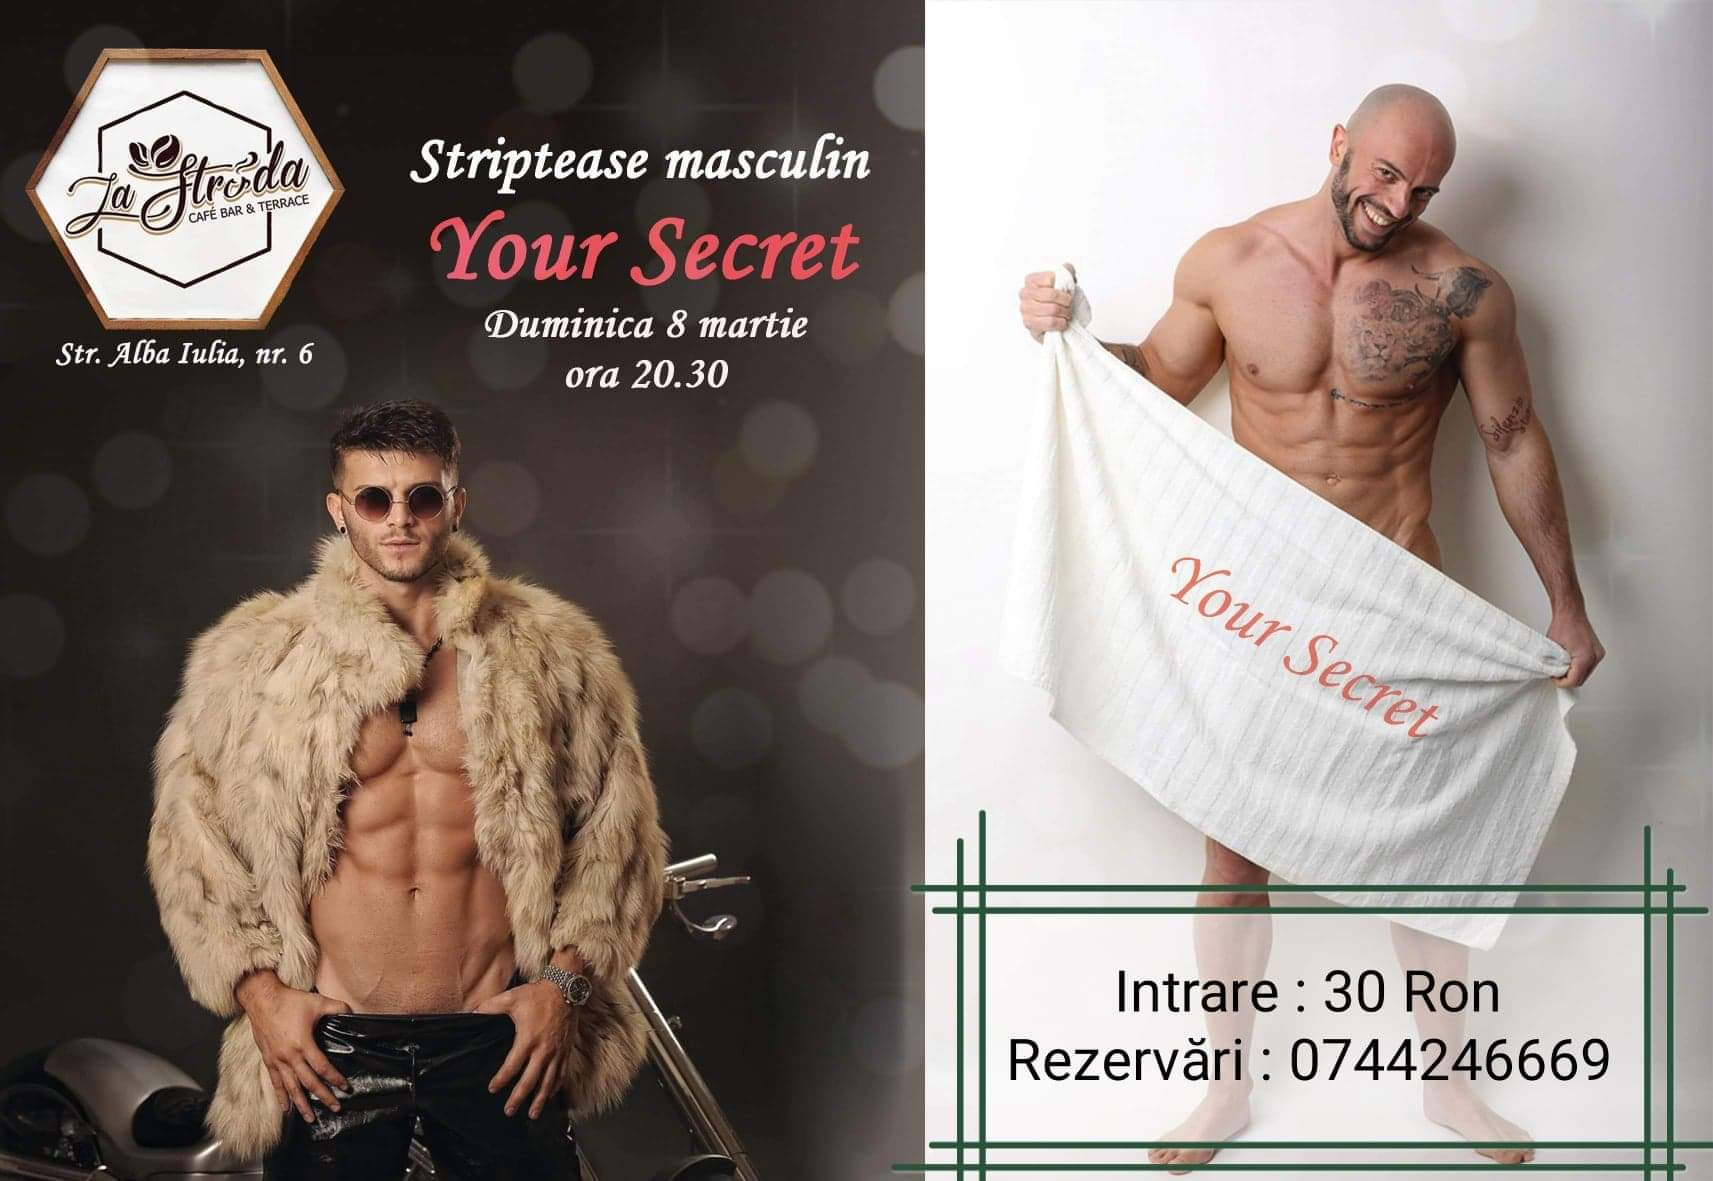 Striptease masculin Your Secret